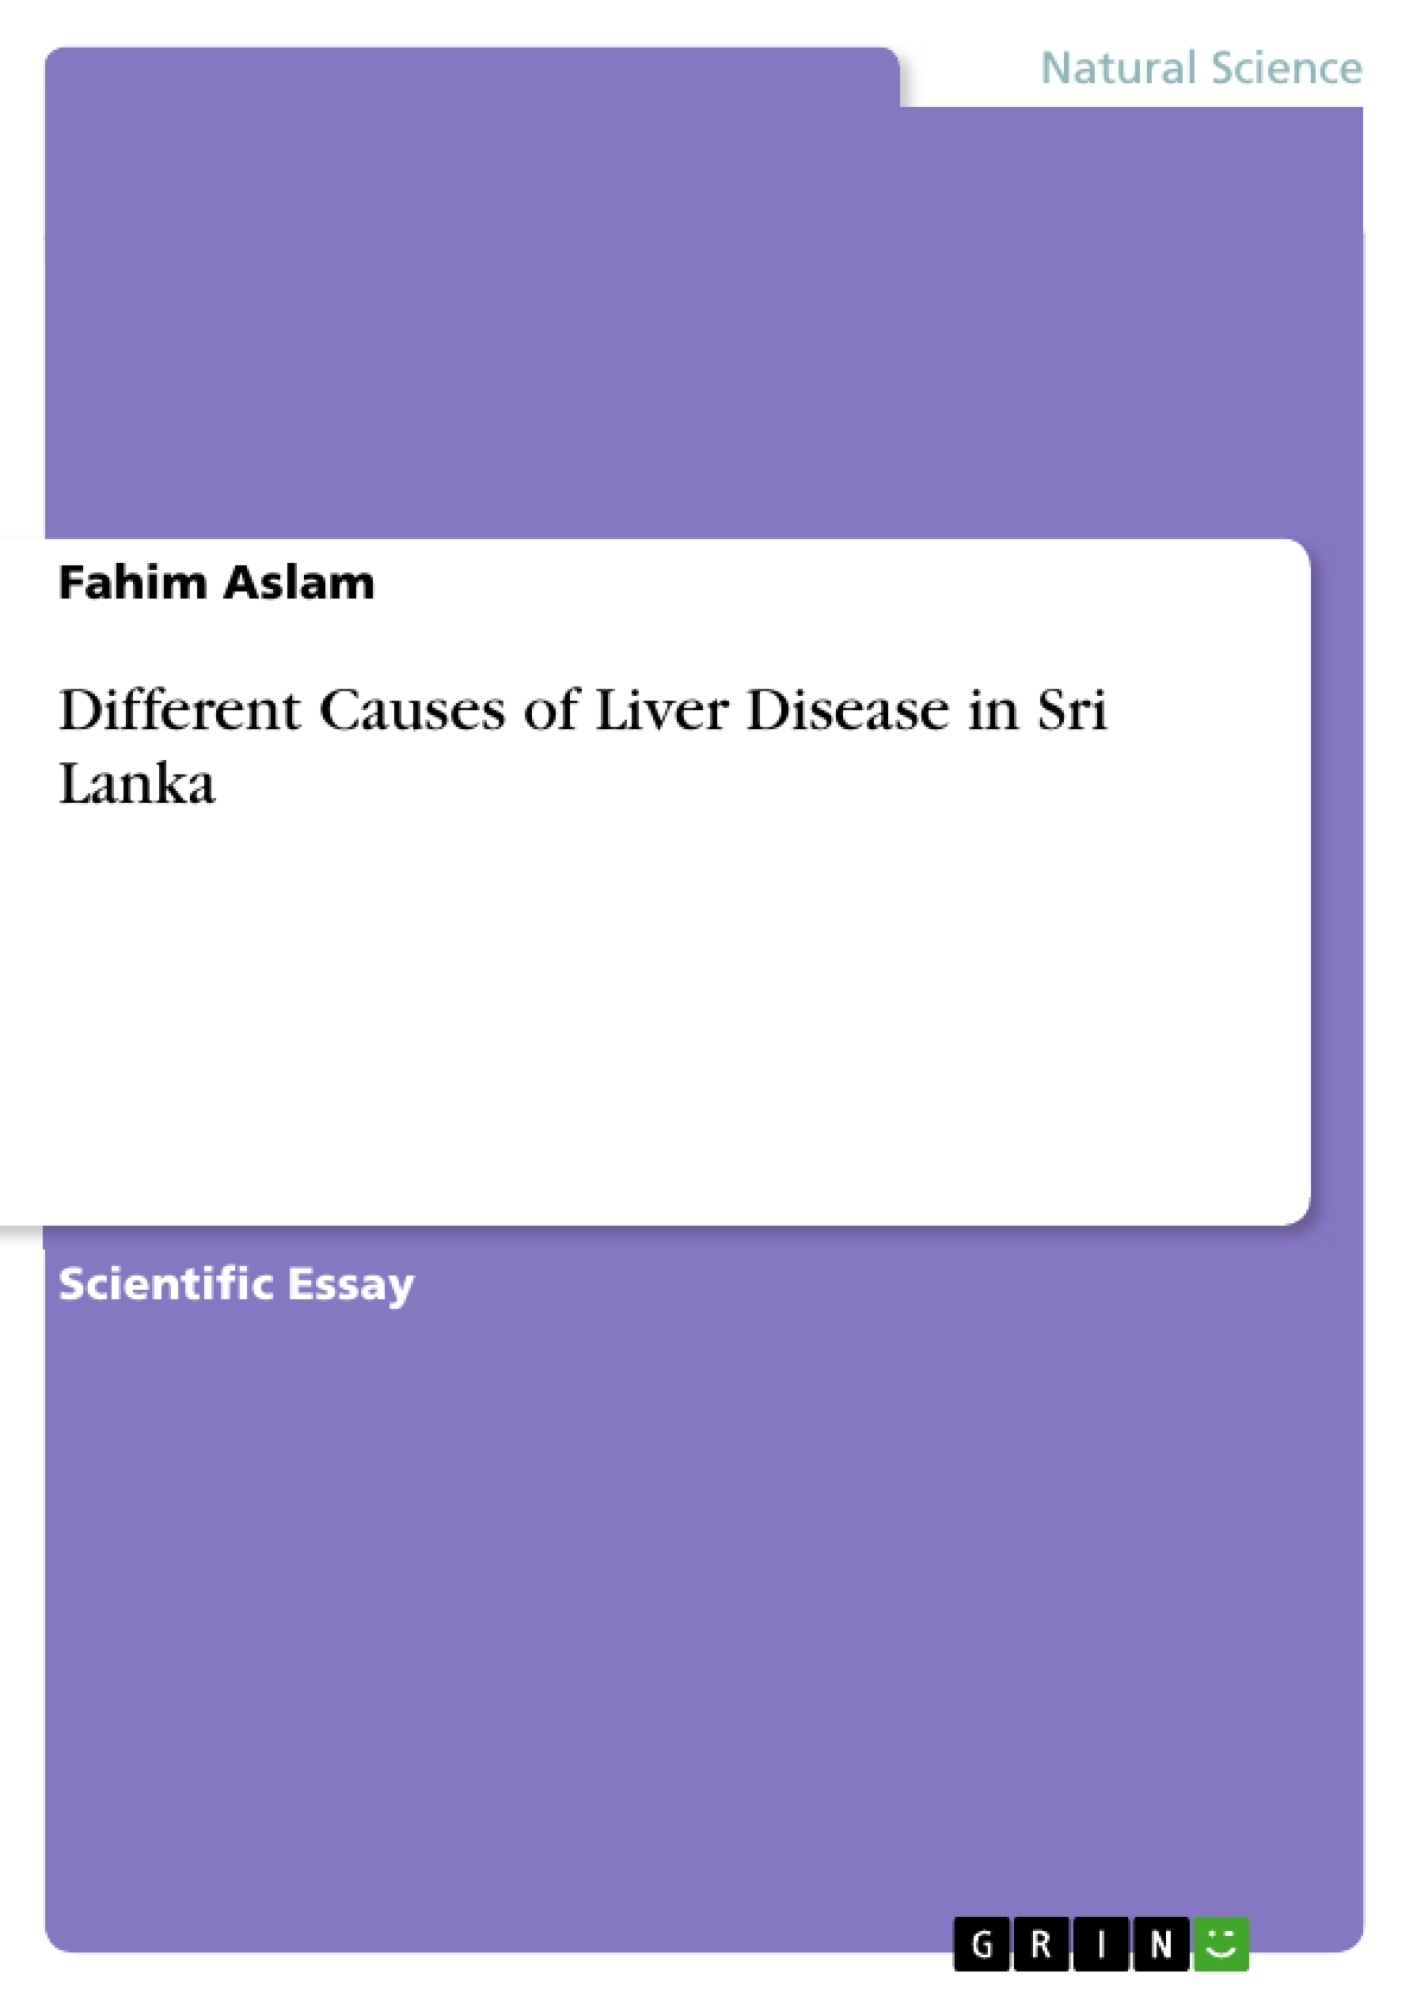 Title: Different Causes of Liver Disease in Sri Lanka